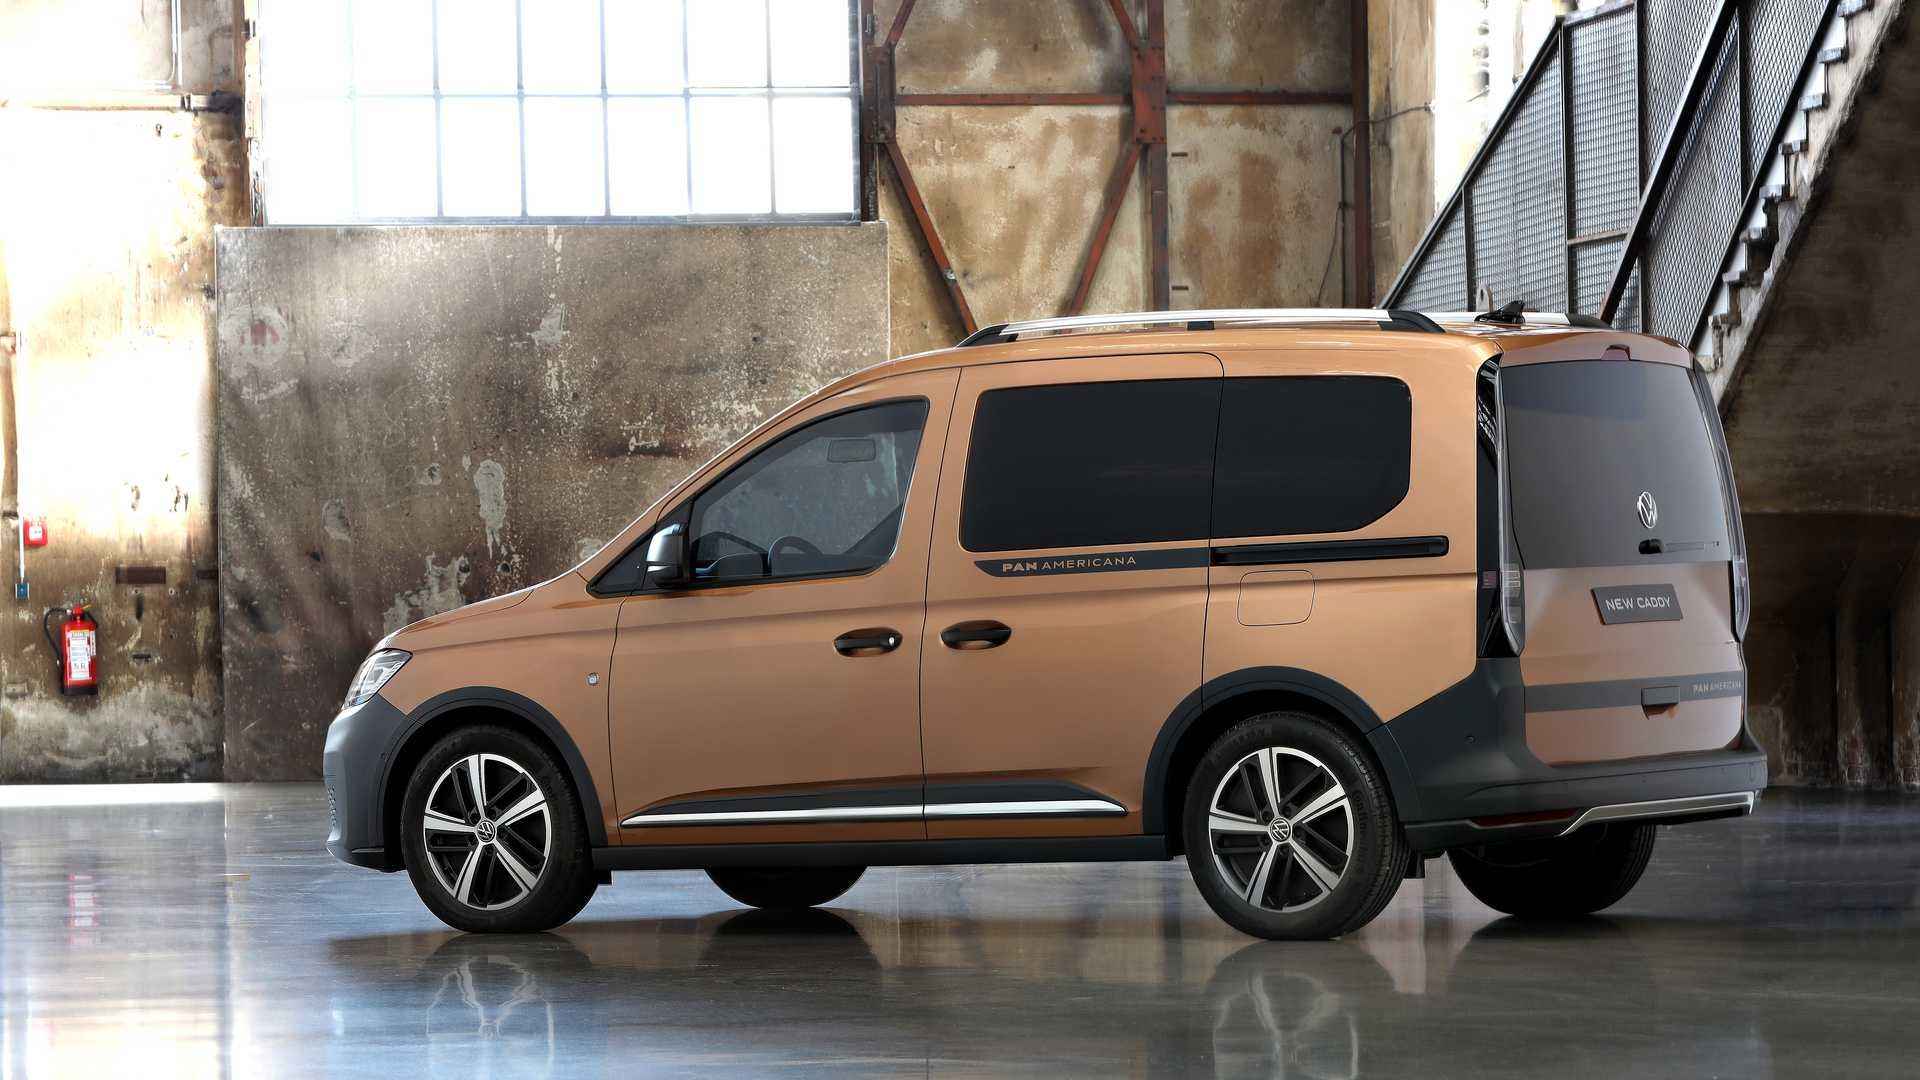 vw-caddy-panamericana-2020